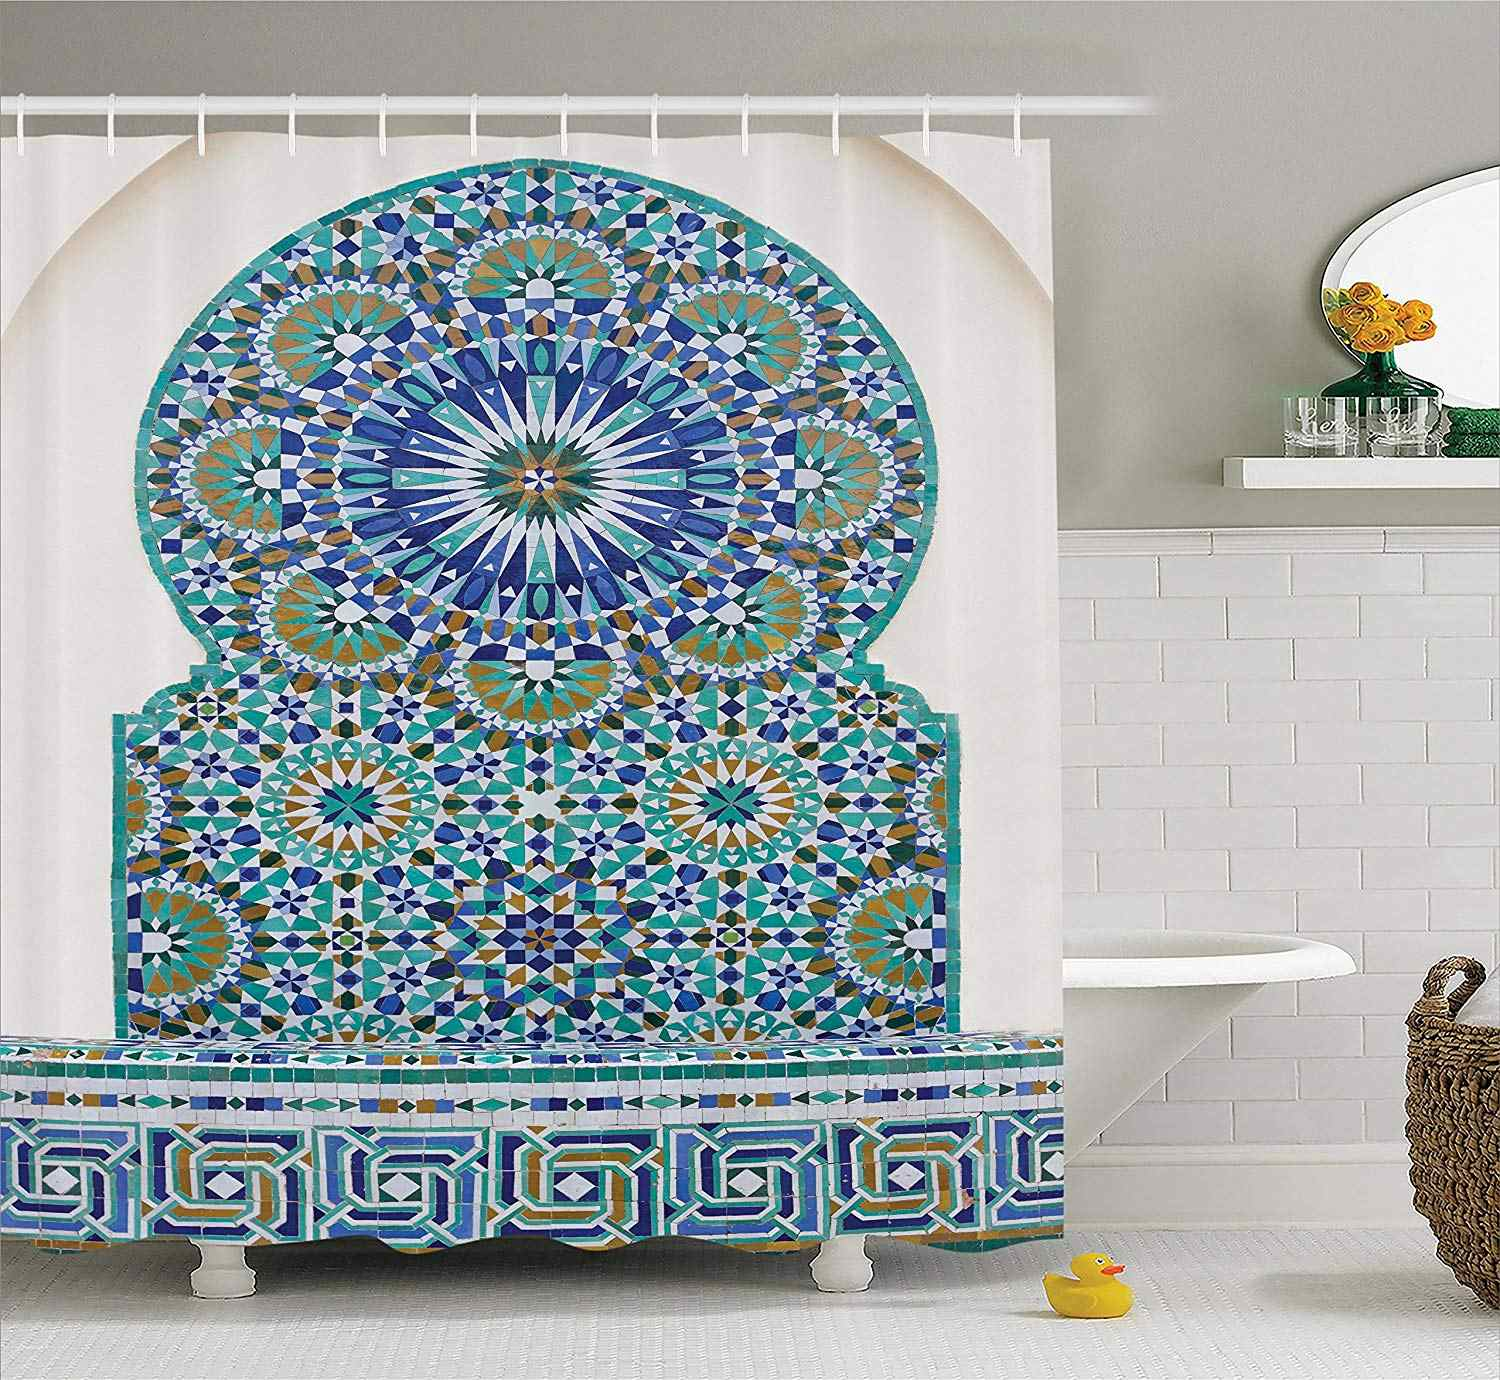 Moroccan Shower Curtain Ceramic Tile With Ancient East Pattern Decorative Tracery Heritage Architecture Bathroom Accessories